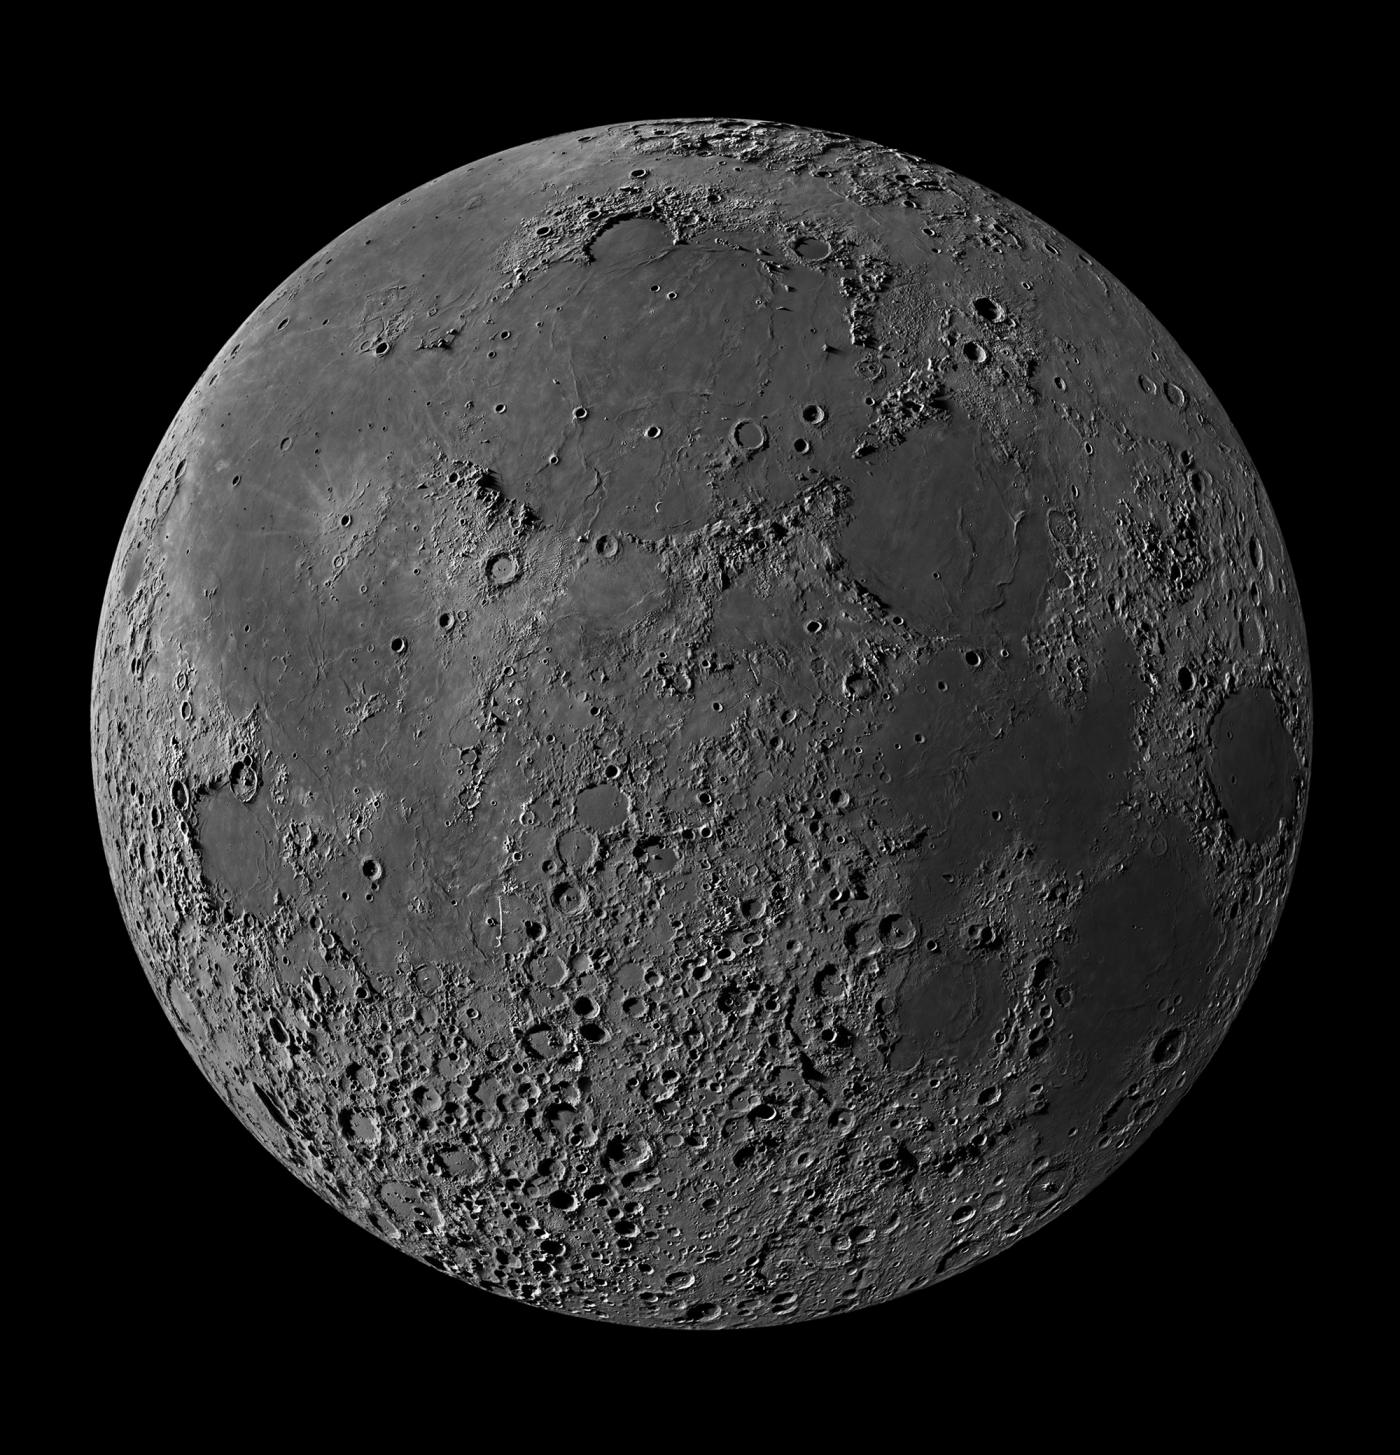 An image showing 'The Impossible Moon'